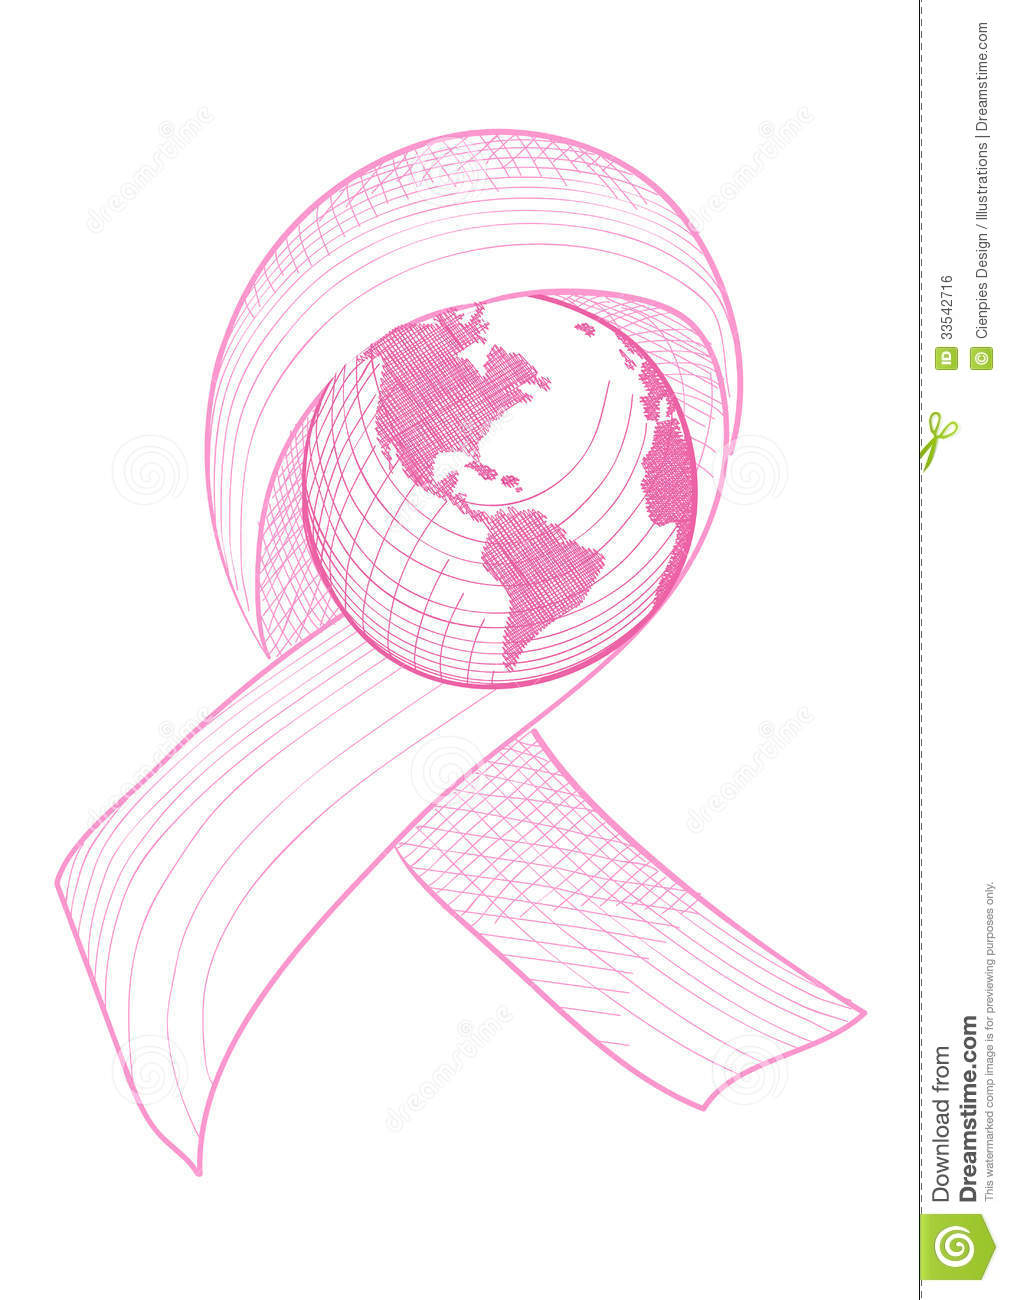 Breast cancer awareness ribbon world illustration